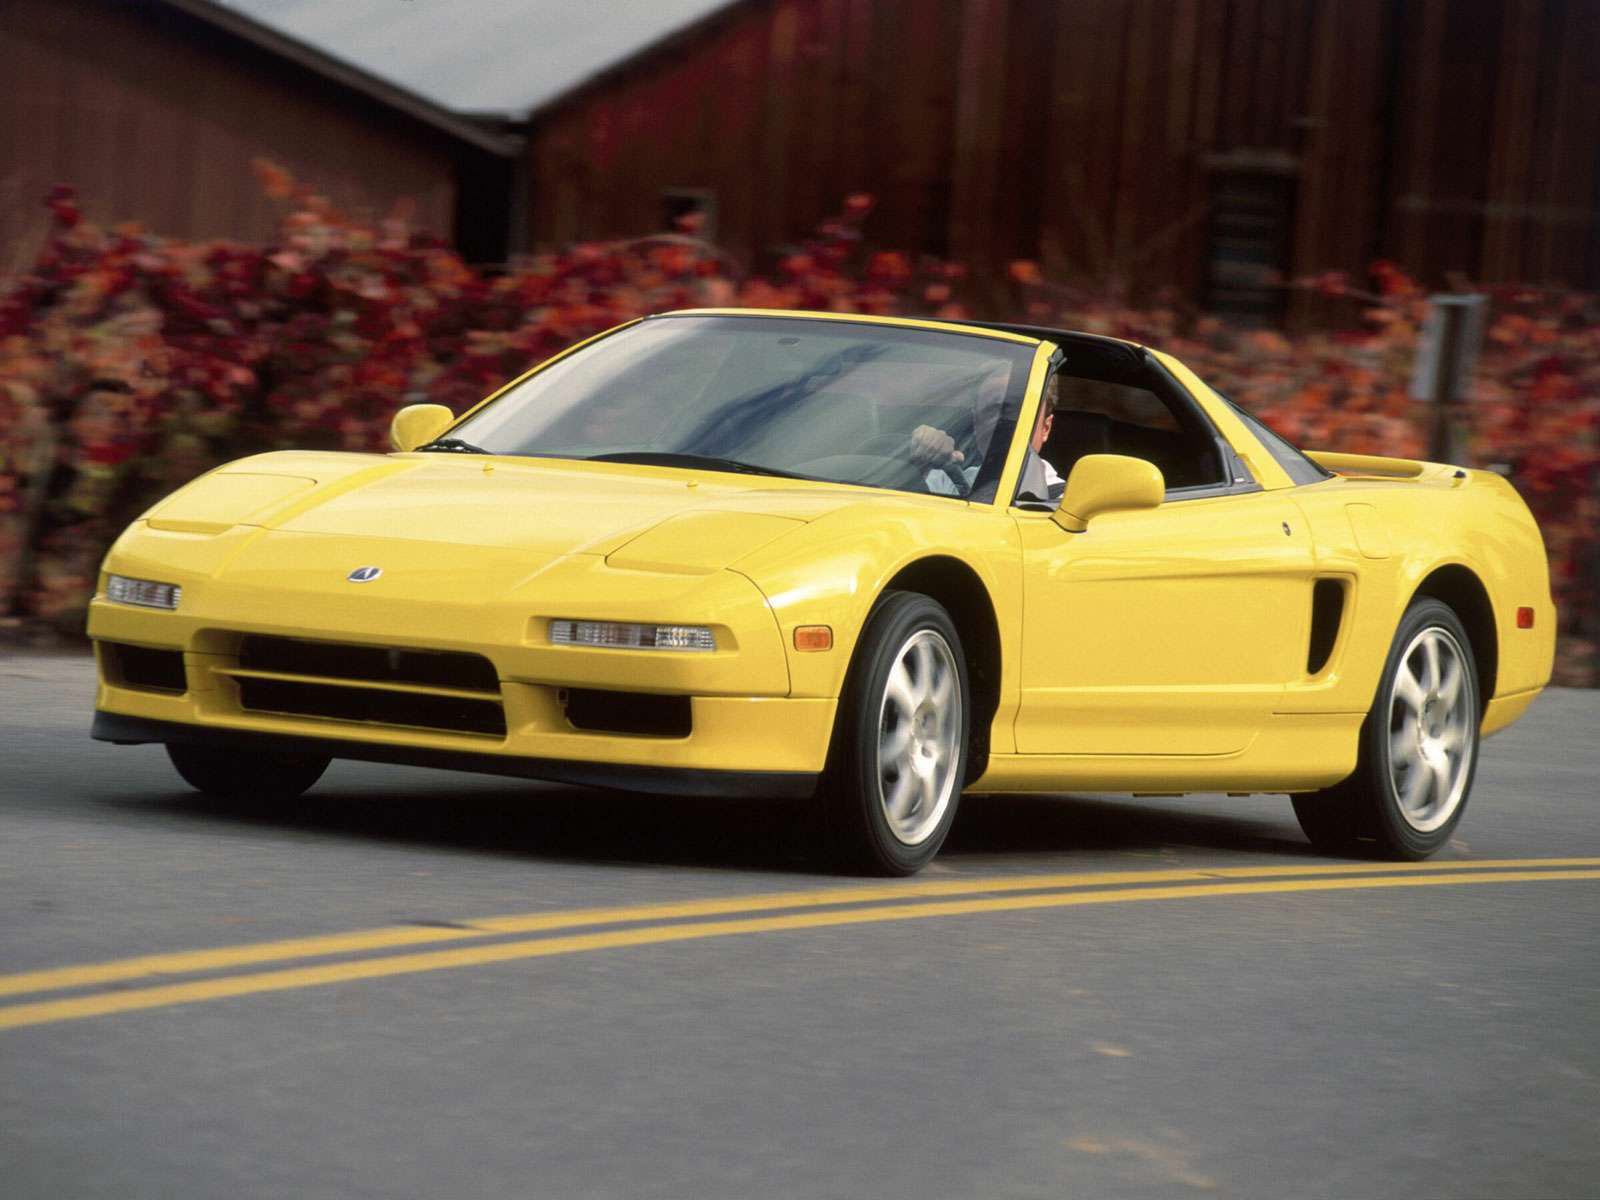 2001 Acura NSX-T photo - 10